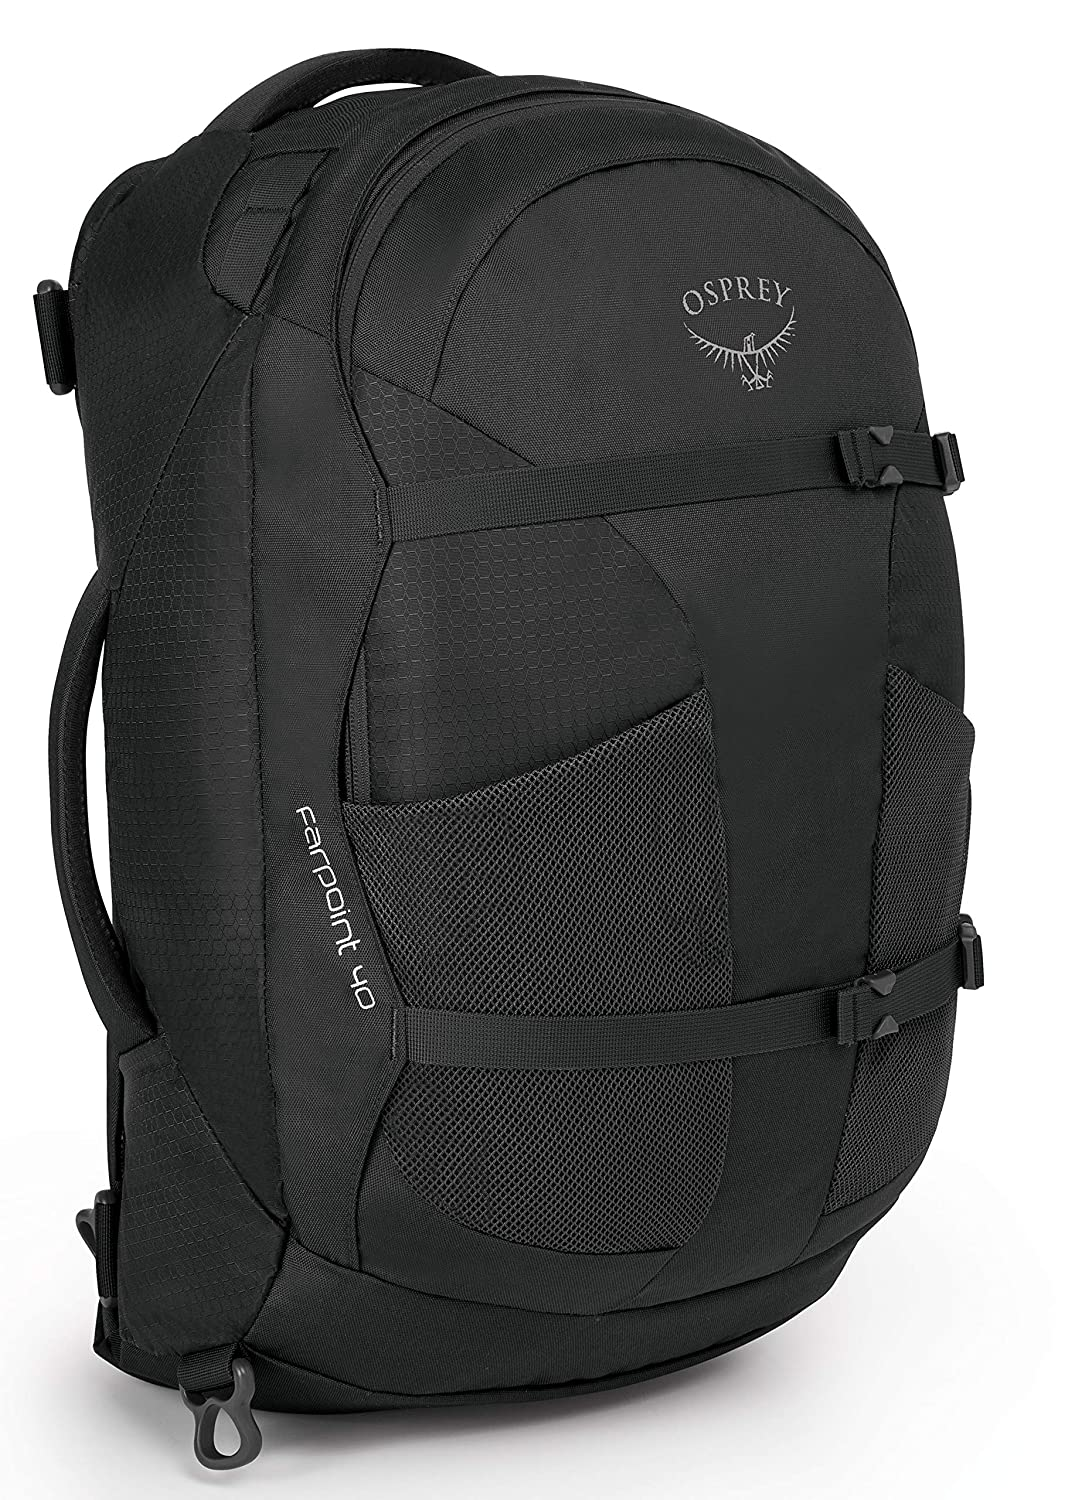 Osprey Farpoint 40 Travel Backpack Black Friday Deals